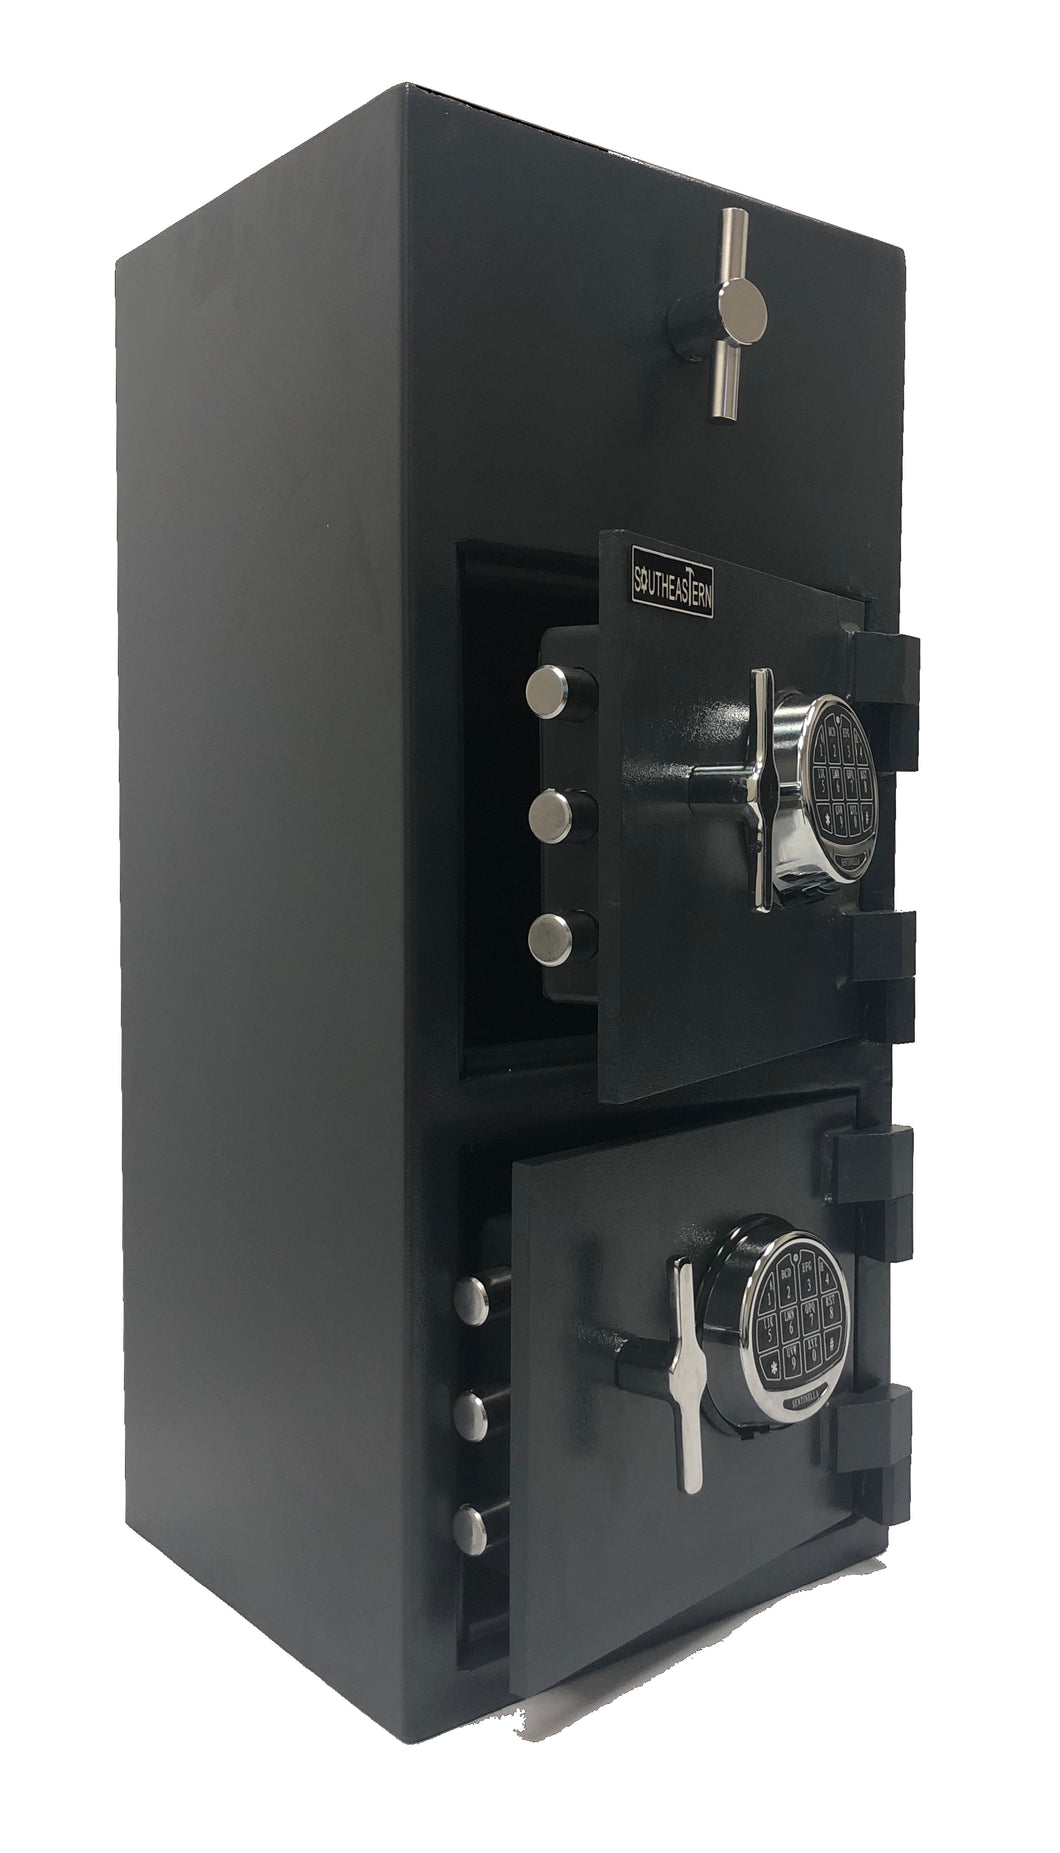 SOUTHEASTERN RH3214EE Double door drop depository security Safe with Quick Digital Lock